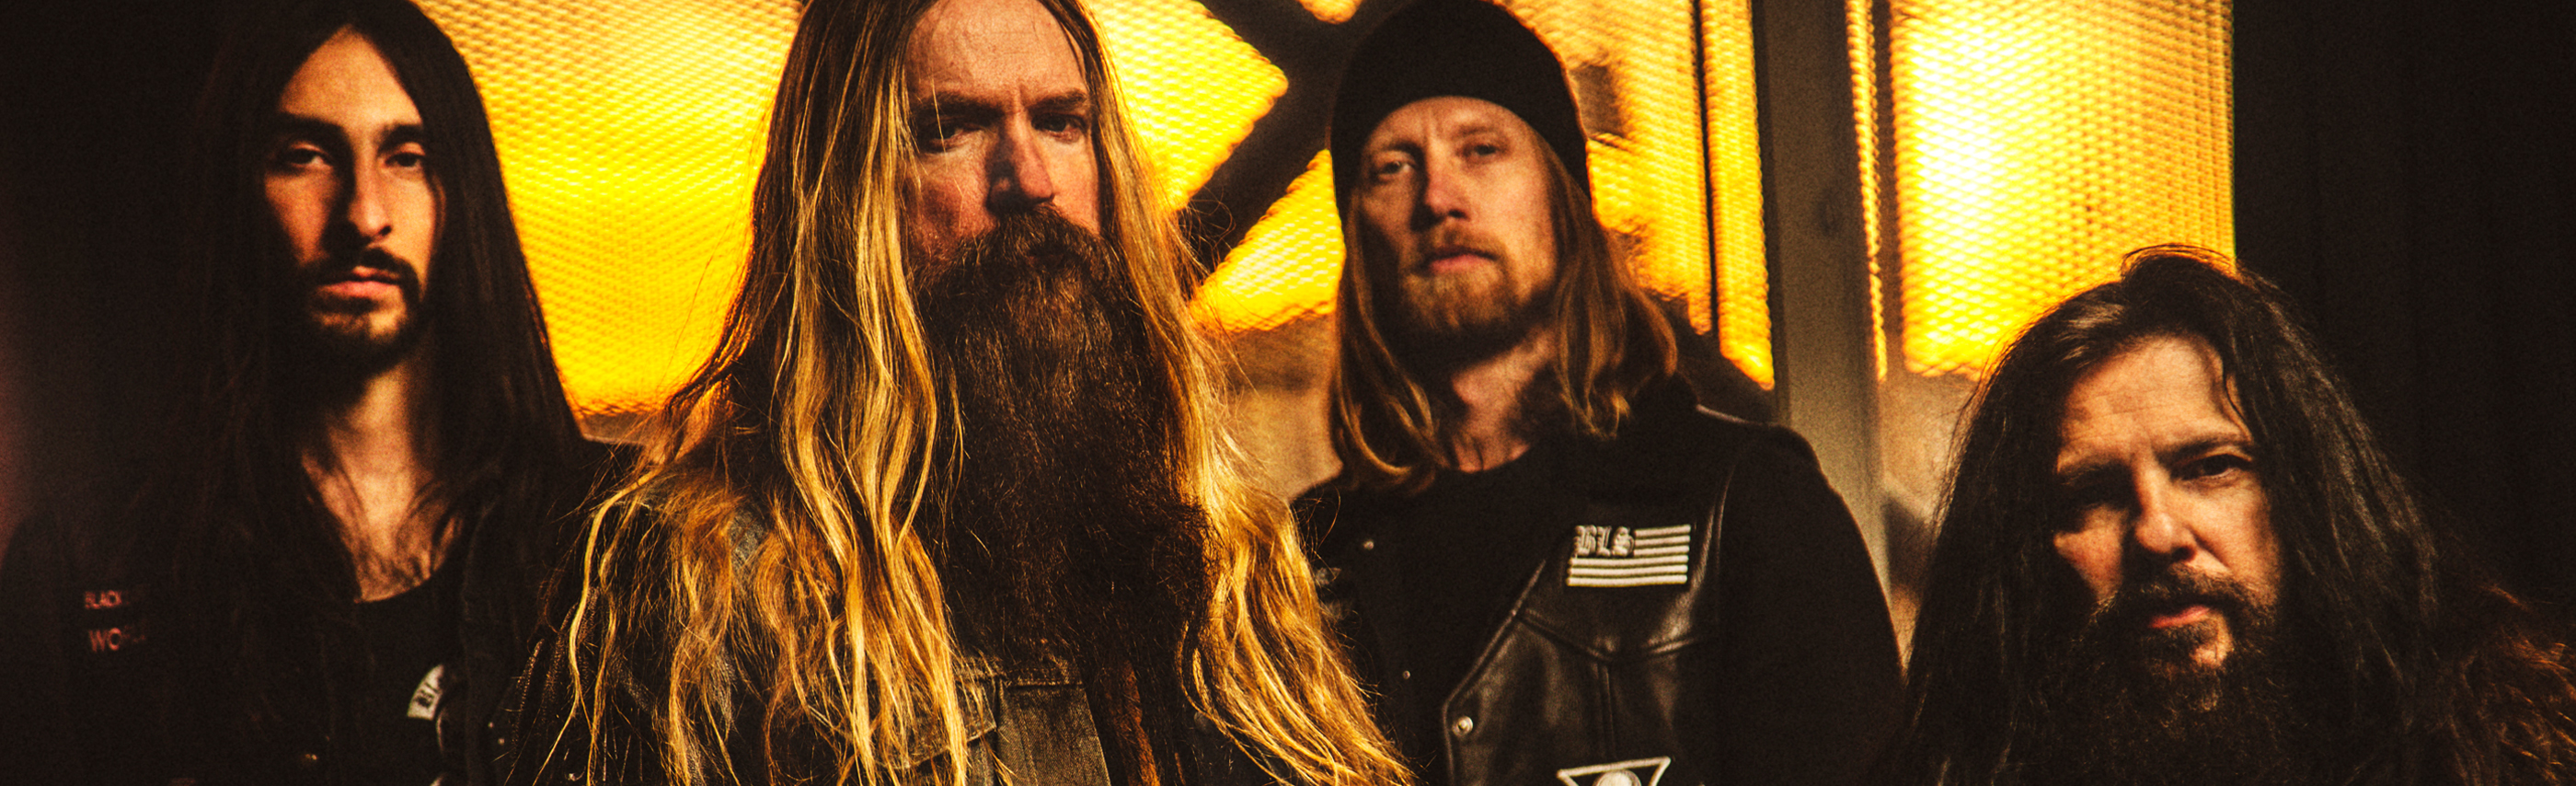 Event Info: Black Label Society at the Wilma 2019 Image